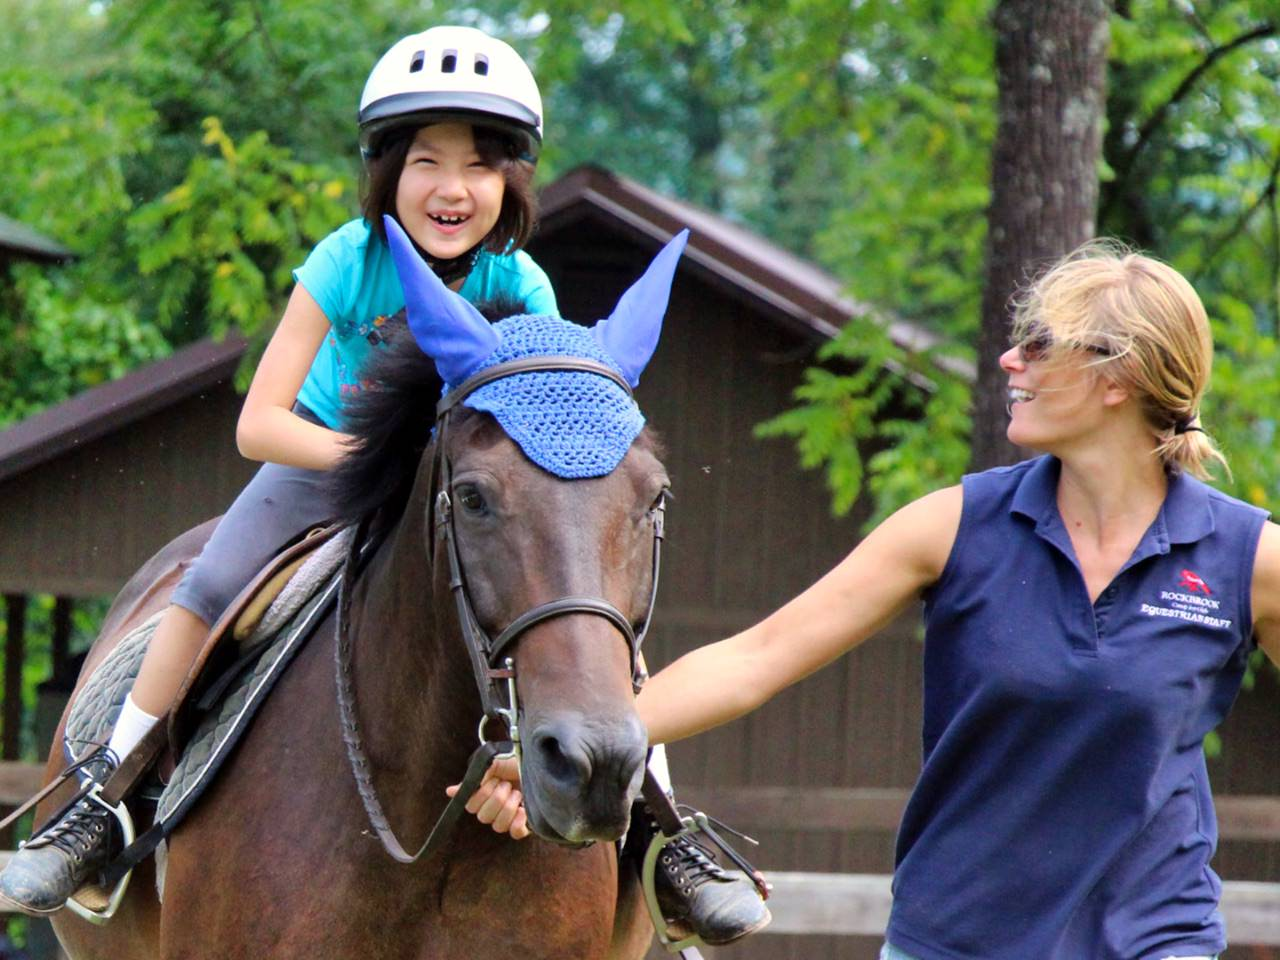 beginner horseback riding camp girl